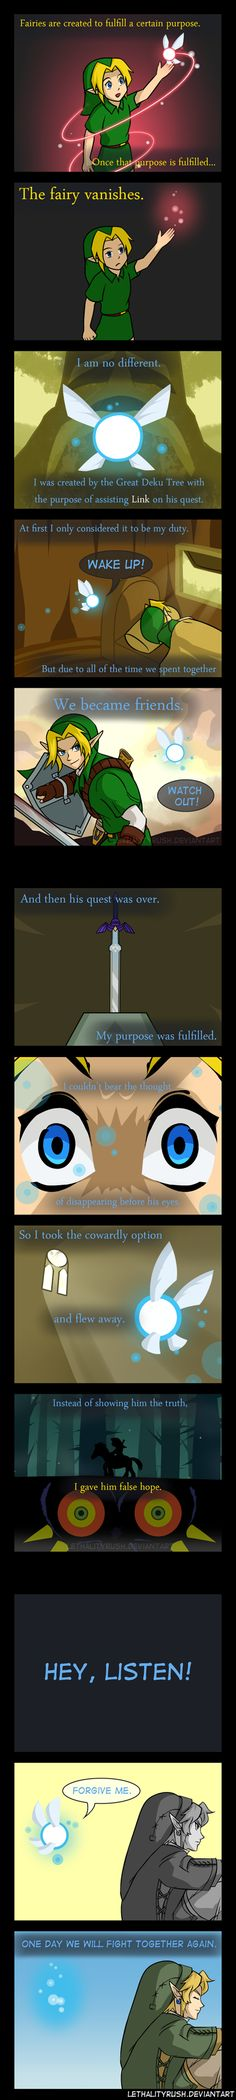 The Legend of Zelda |  Ocarina of Time comic